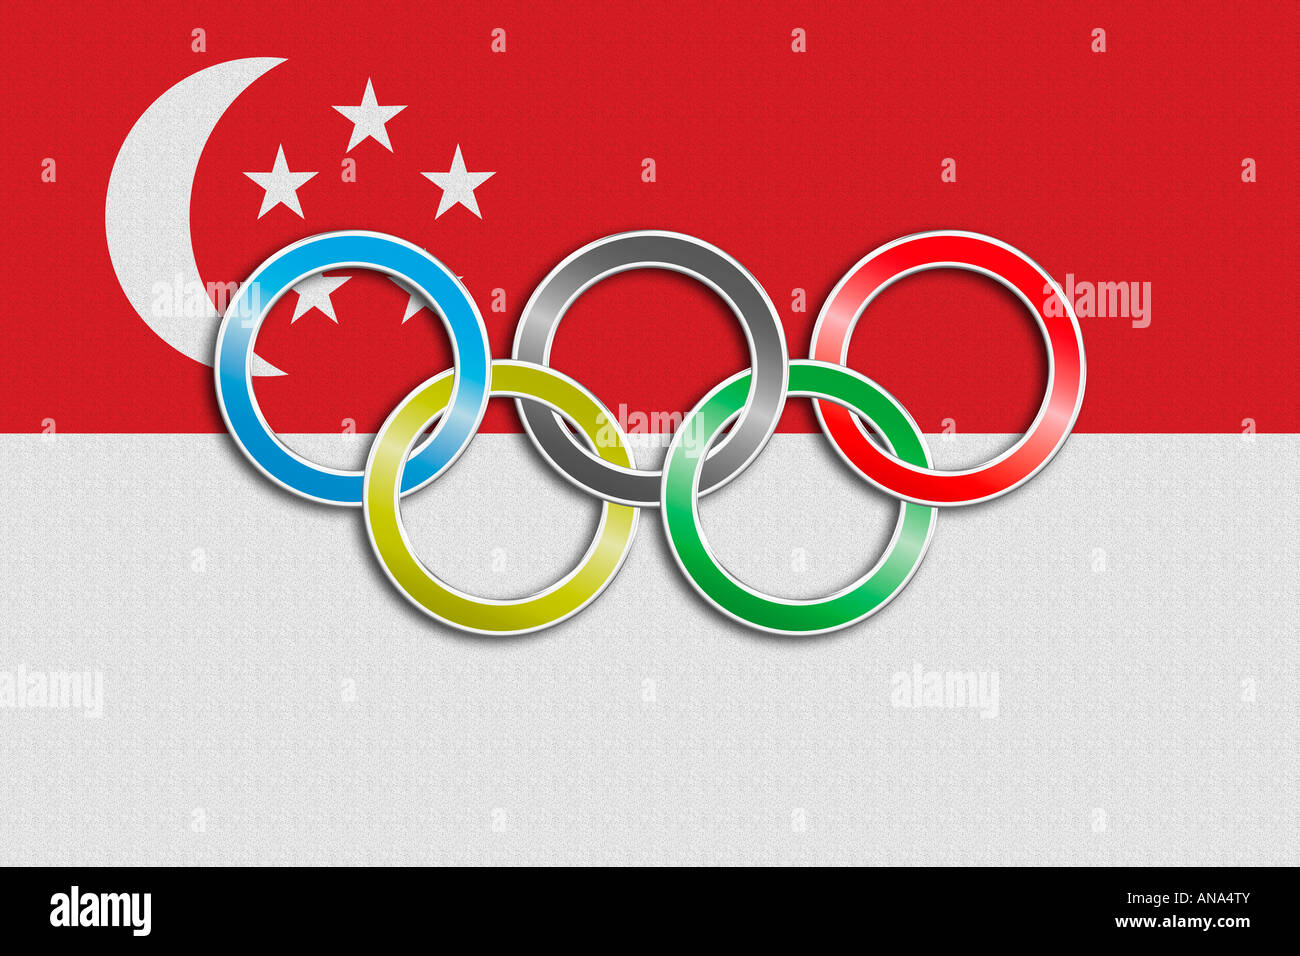 Flag of Singapore with olympic symbol Stock Photo, Royalty Free ...